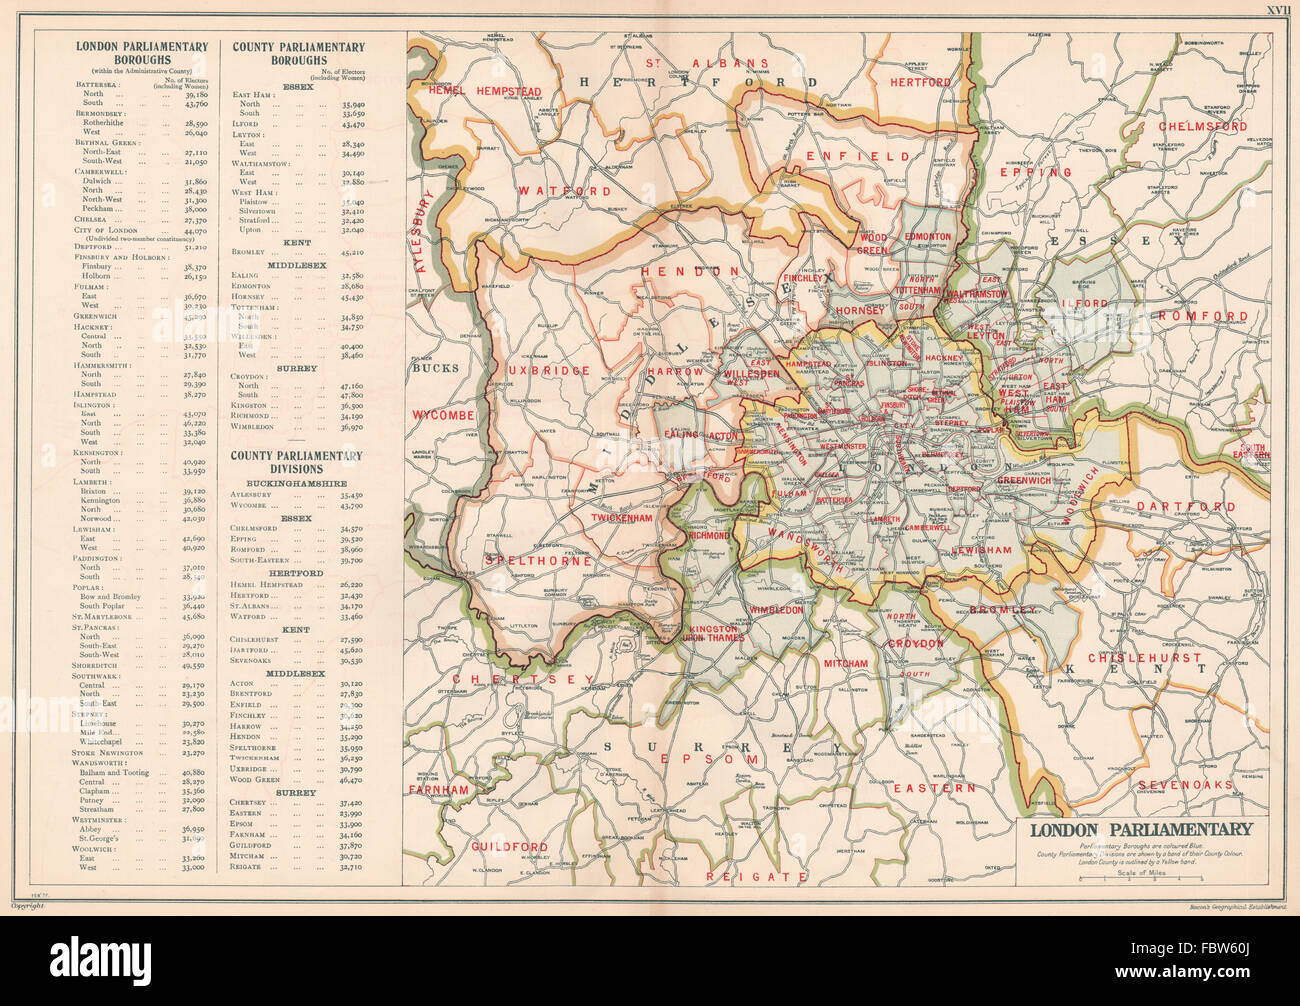 Greater London Parliamentary Constituencies Boroughs # Electors Bacon 1934 Map High Quality Goods